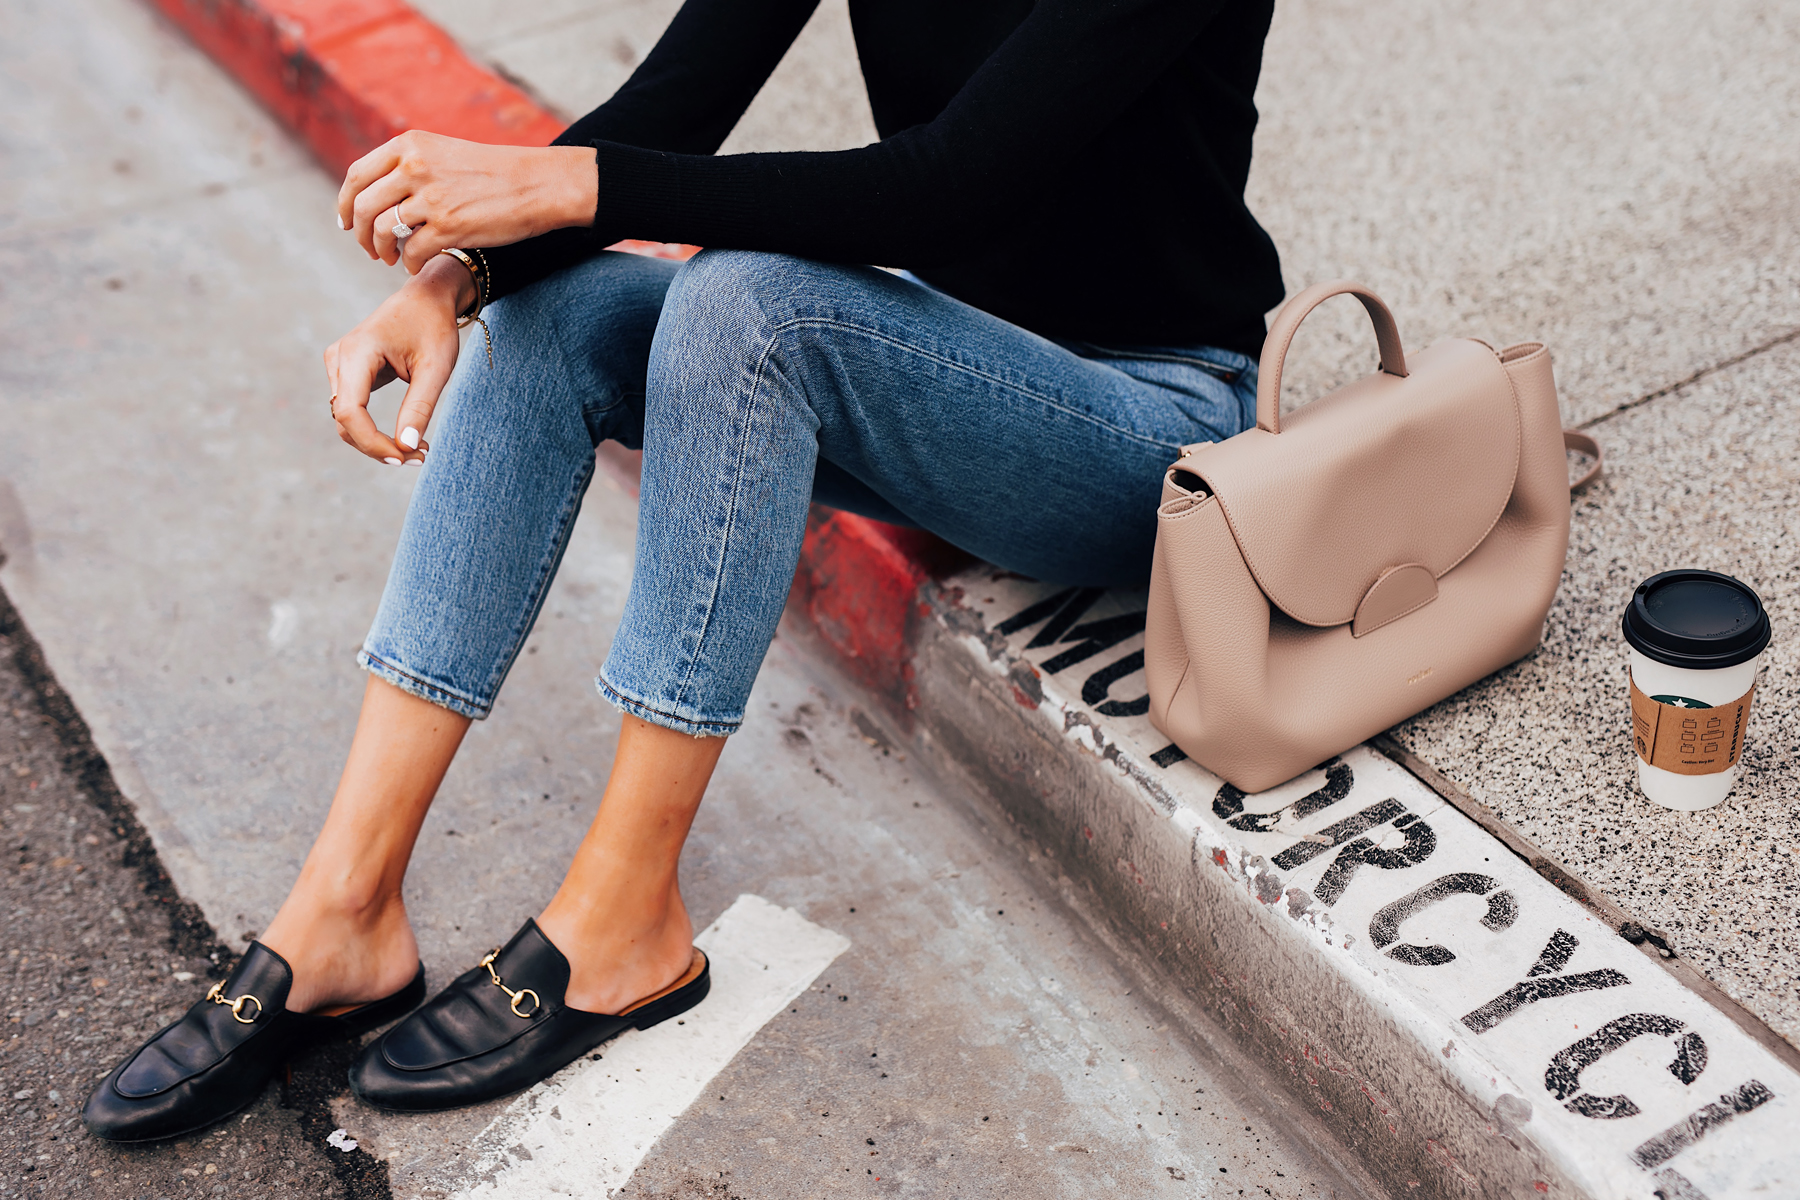 Woman Wearing Everlane Black Cashmere Sweater Levis 501 Jeans Gucci Princetown Mules Black Polene Numero Un Handbag Grey Fashion Jackson San Diego Fashion Blogger Street Style